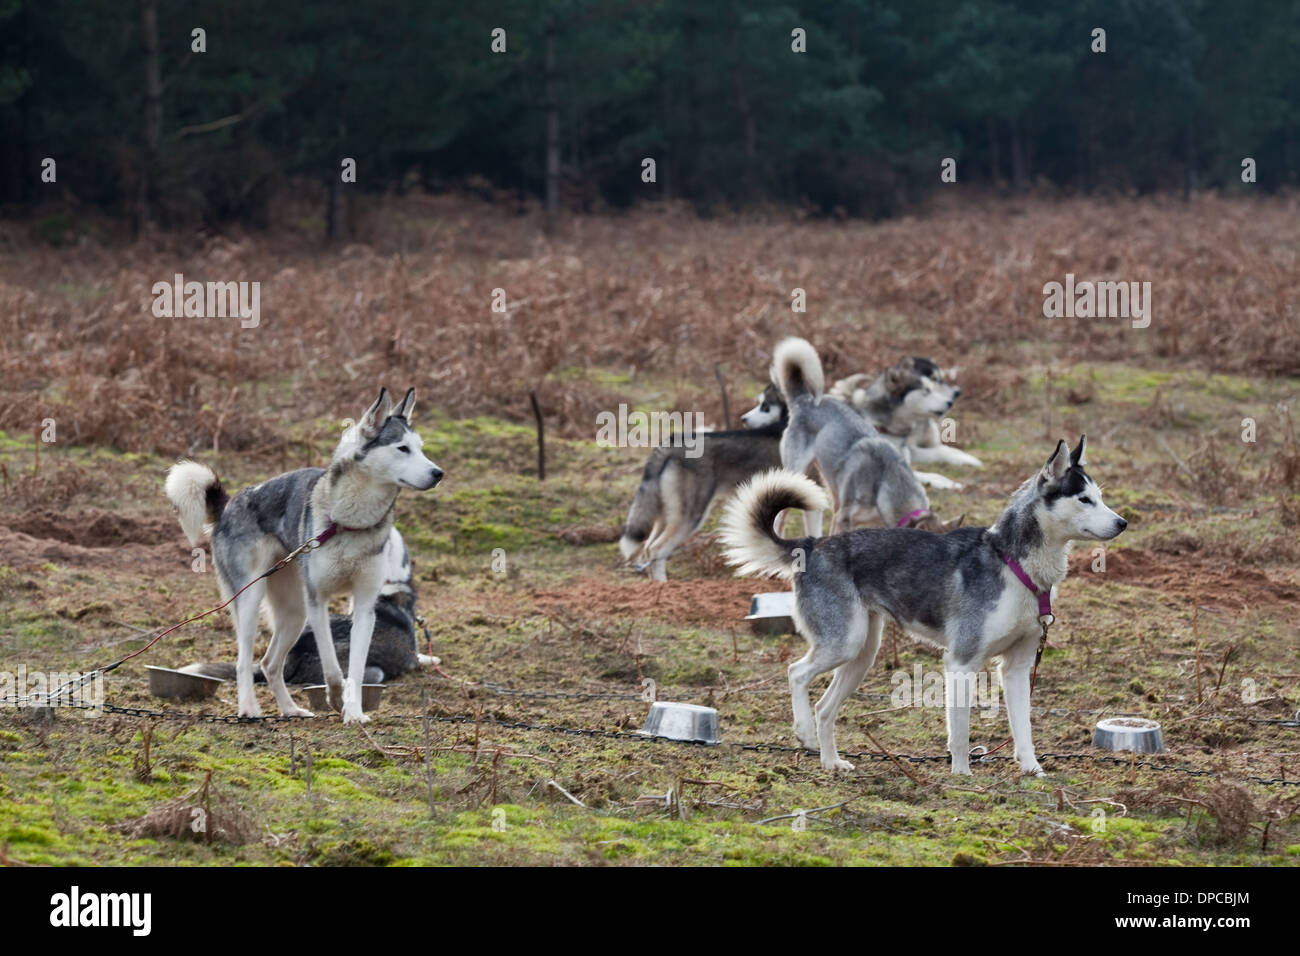 Siberian Huskies (Canis lupus familiaris). Tethered animals waiting their turn to be called for a race at a 'mush'. Thetford. UK. - Stock Image